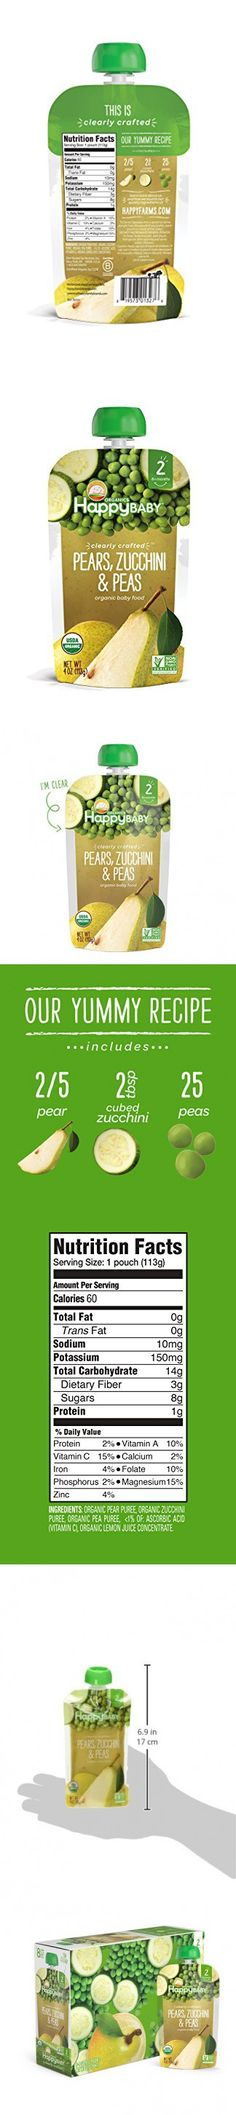 Happy Baby Clearly Crafted, Organic Baby Food, Stage 2, Pears, Zucchini & Peas, Stage 2, 4.0oz Clear Pouch (16 Count)